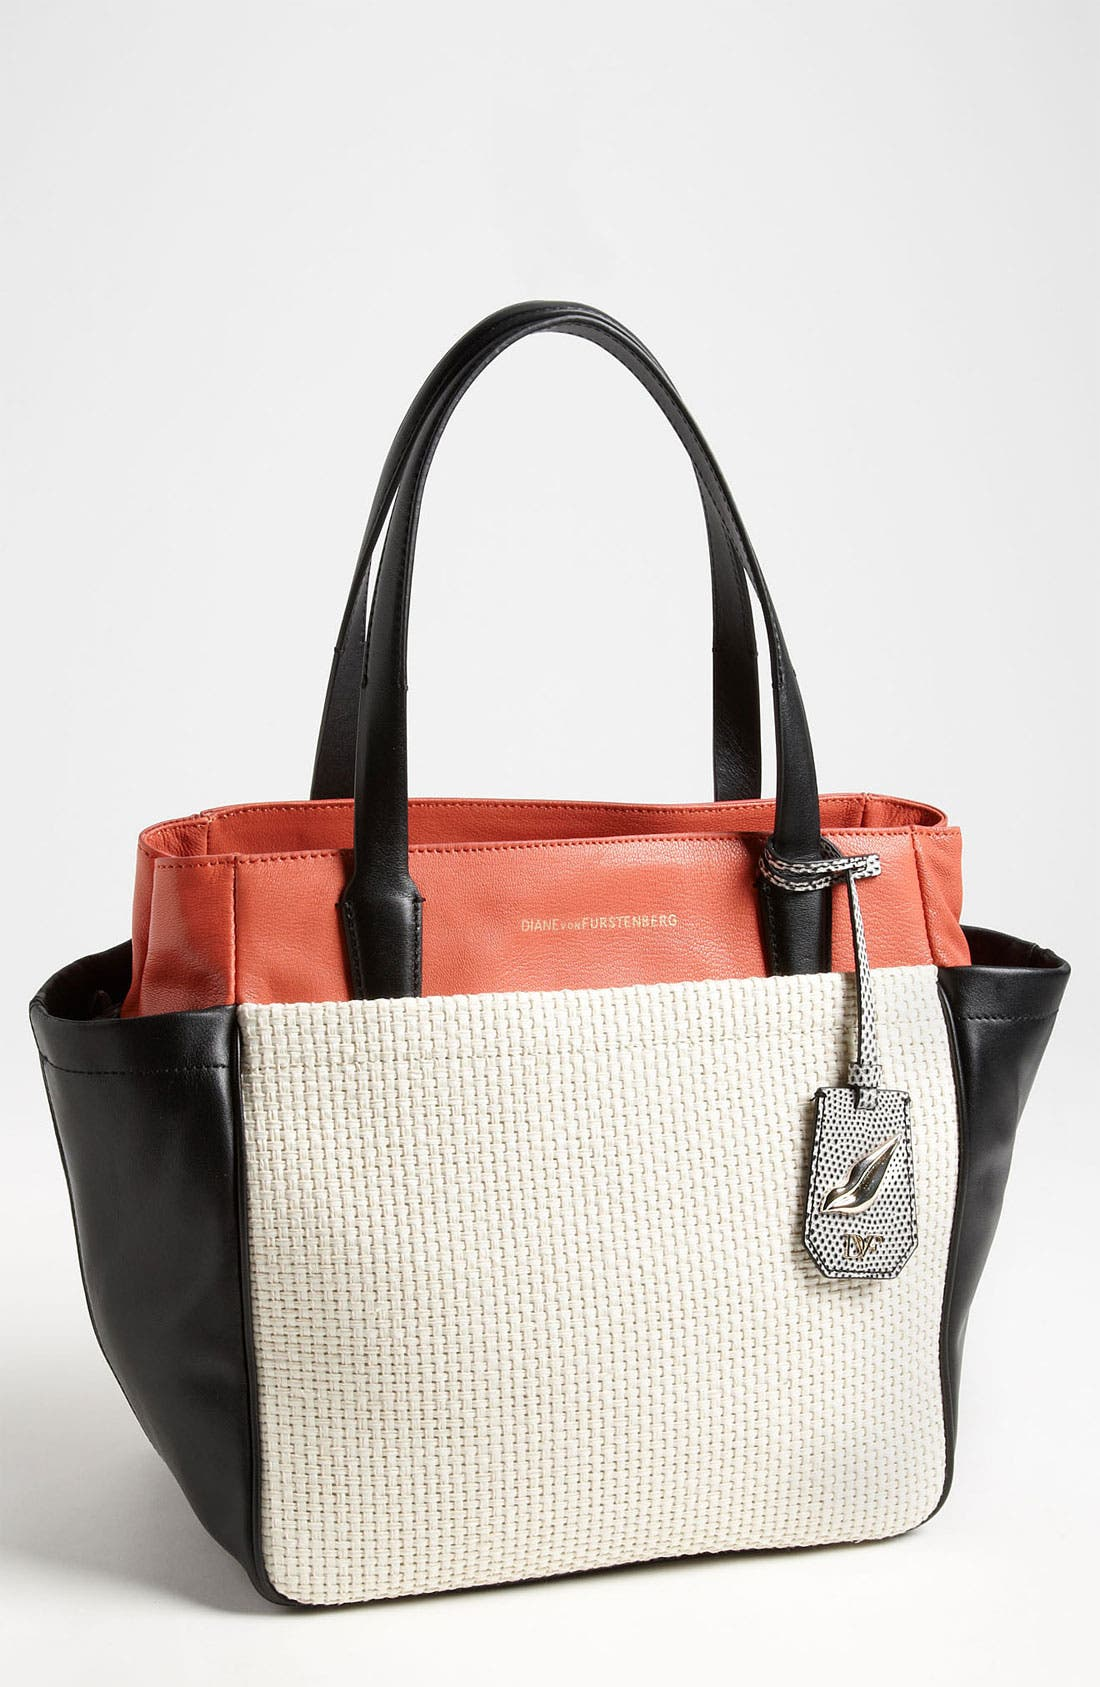 Main Image - Diane von Furstenberg 'On the Go' Leather & Straw Tote